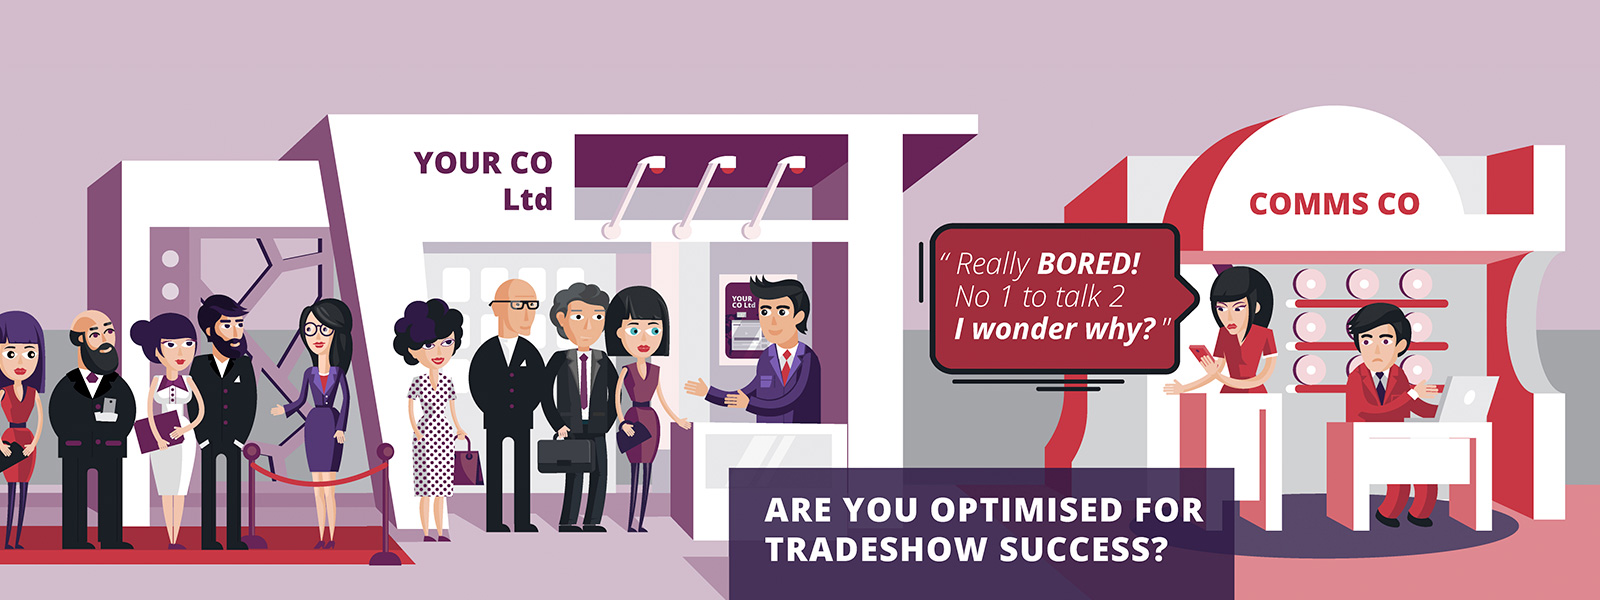 Are you optimised for tradeshow success?